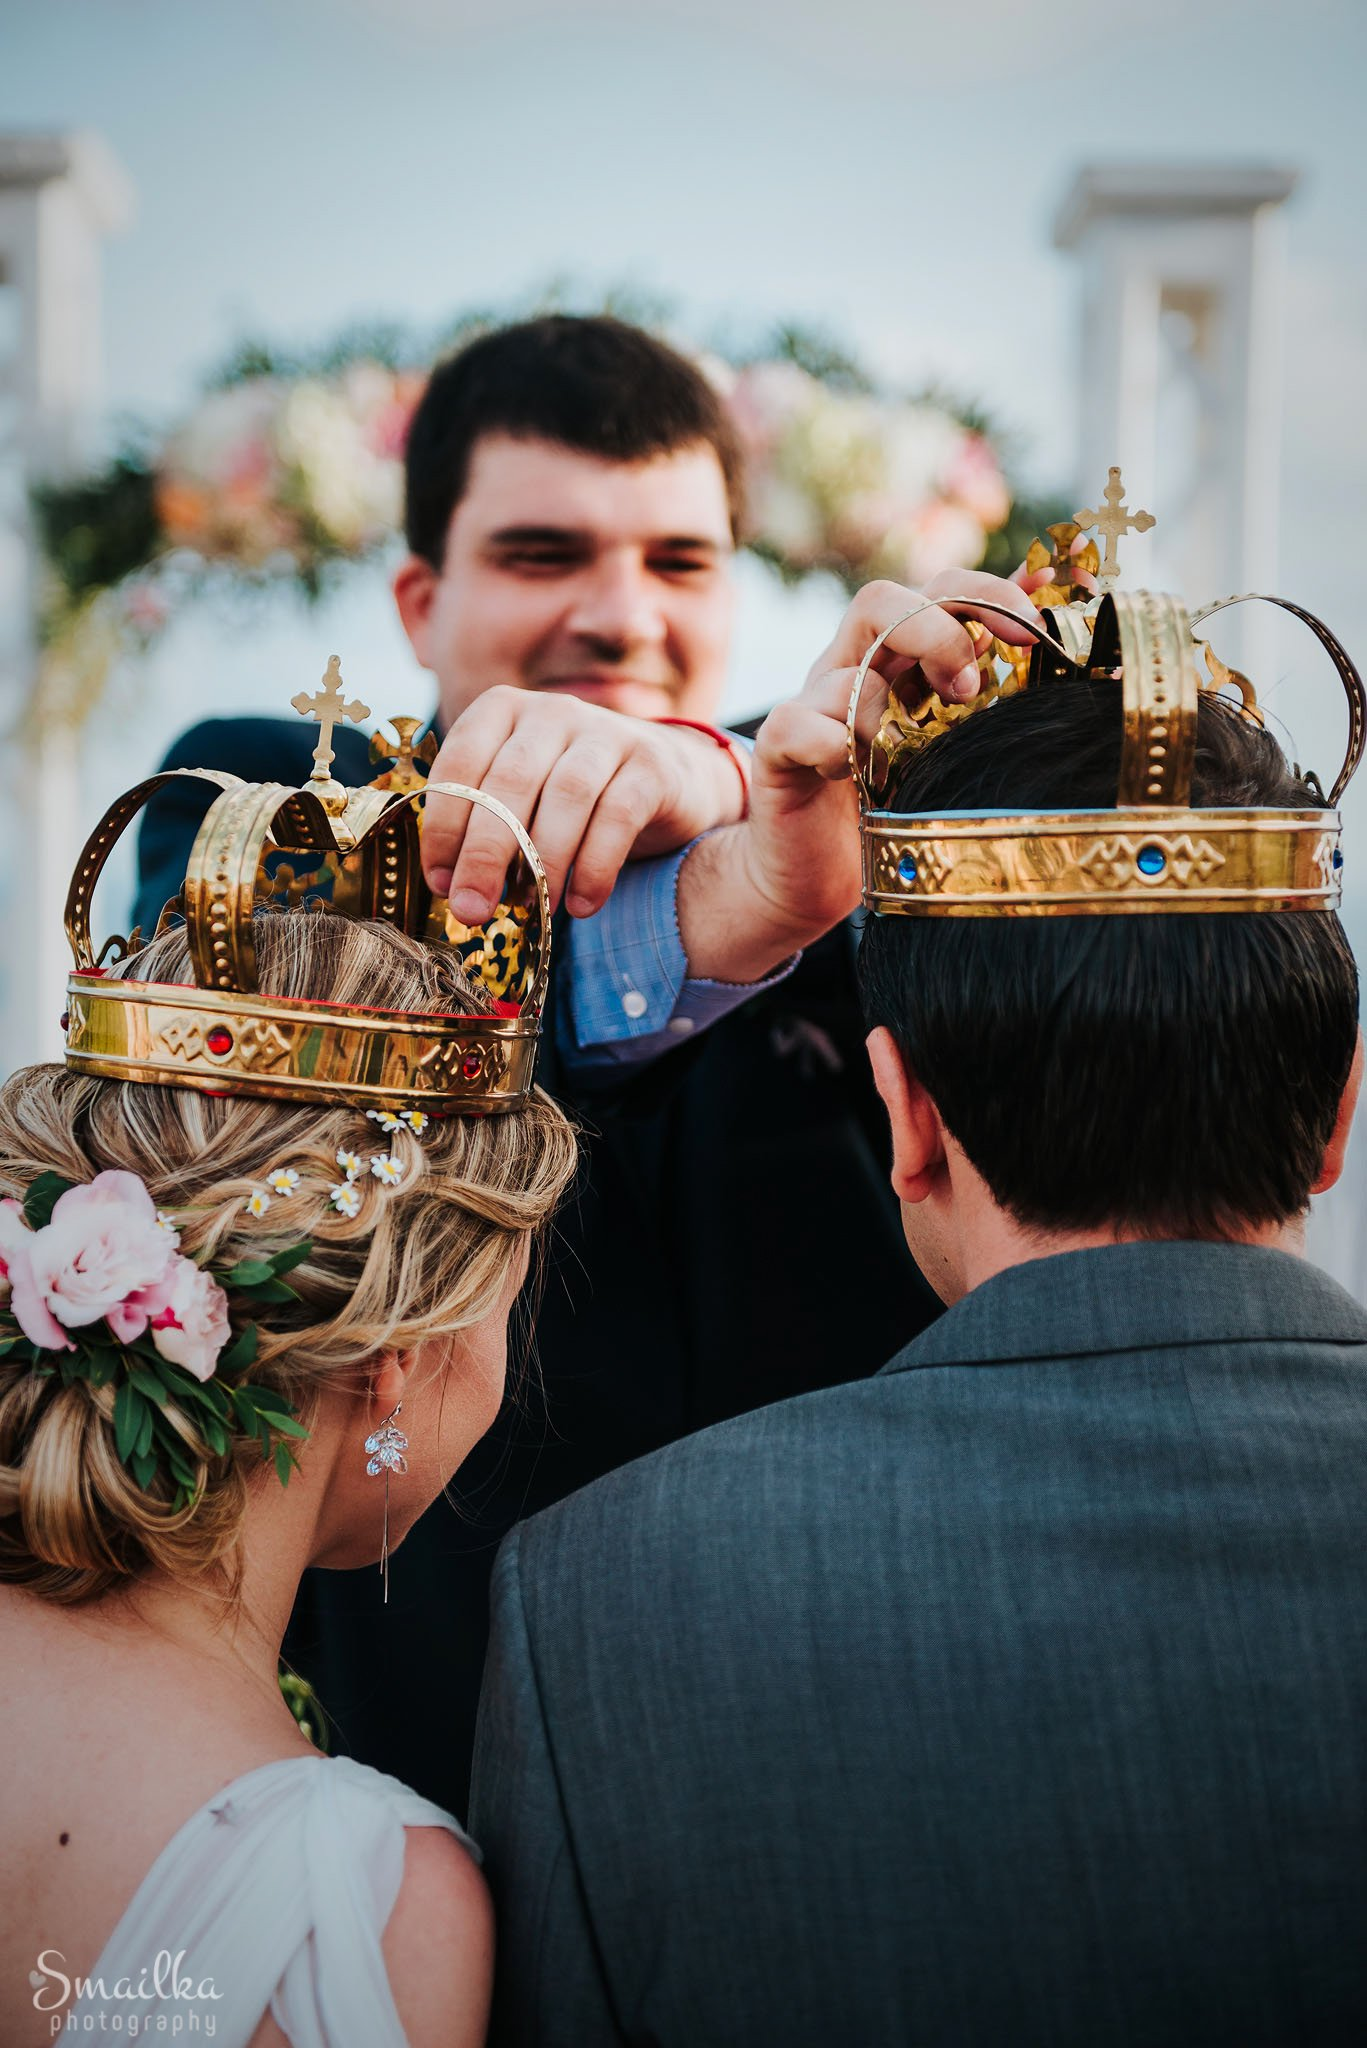 Wedding crowns on the bride and groom at Black Sea Rama